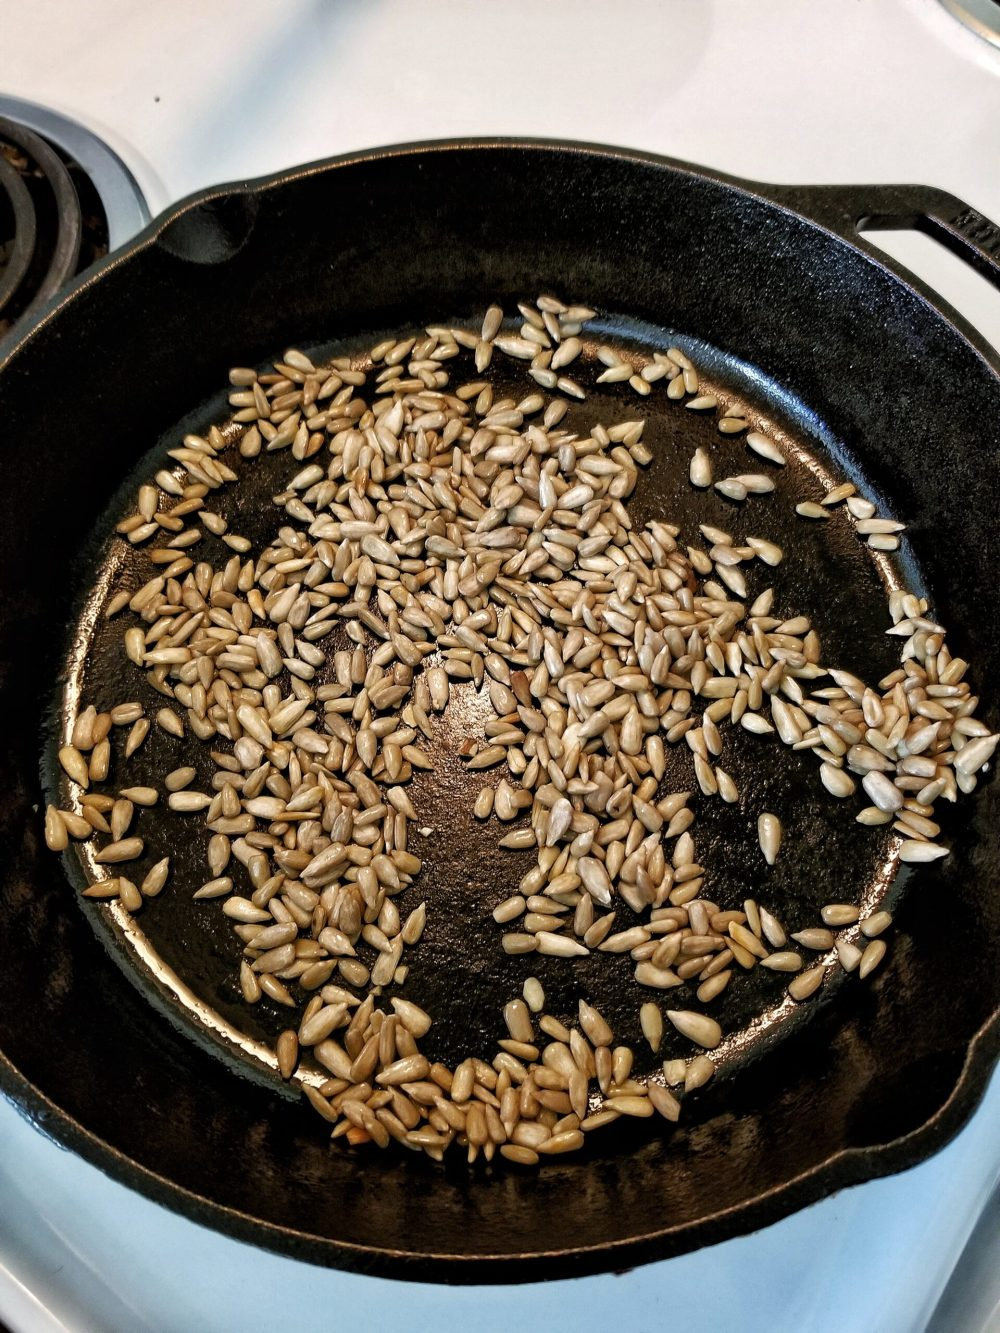 Sunflower seeds in a cast-iron skillet